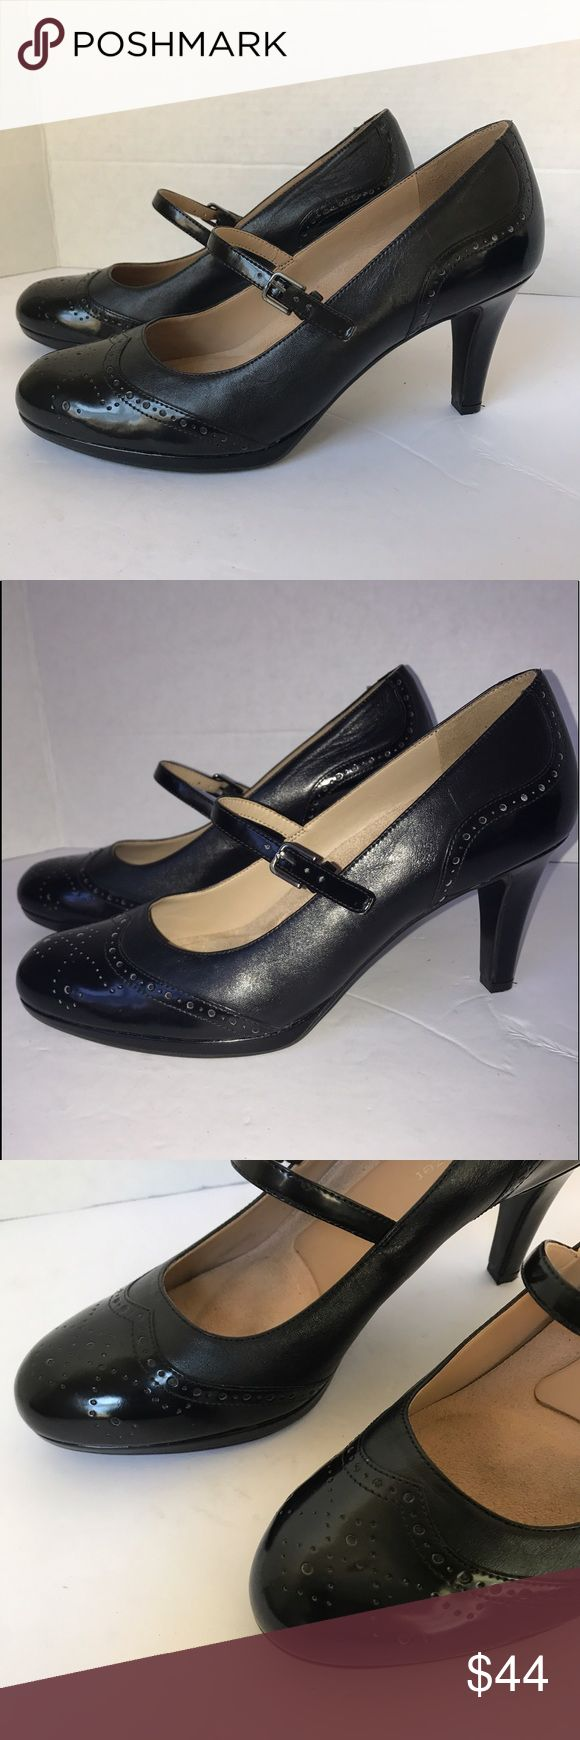 Naturalizer black Mary Janes shoes heels sz 9.5 W Naturalizer black Mary Janes shoes heels sz 9.5 W in excellent condition/ feel free to ask questions Naturalizer Shoes Heels